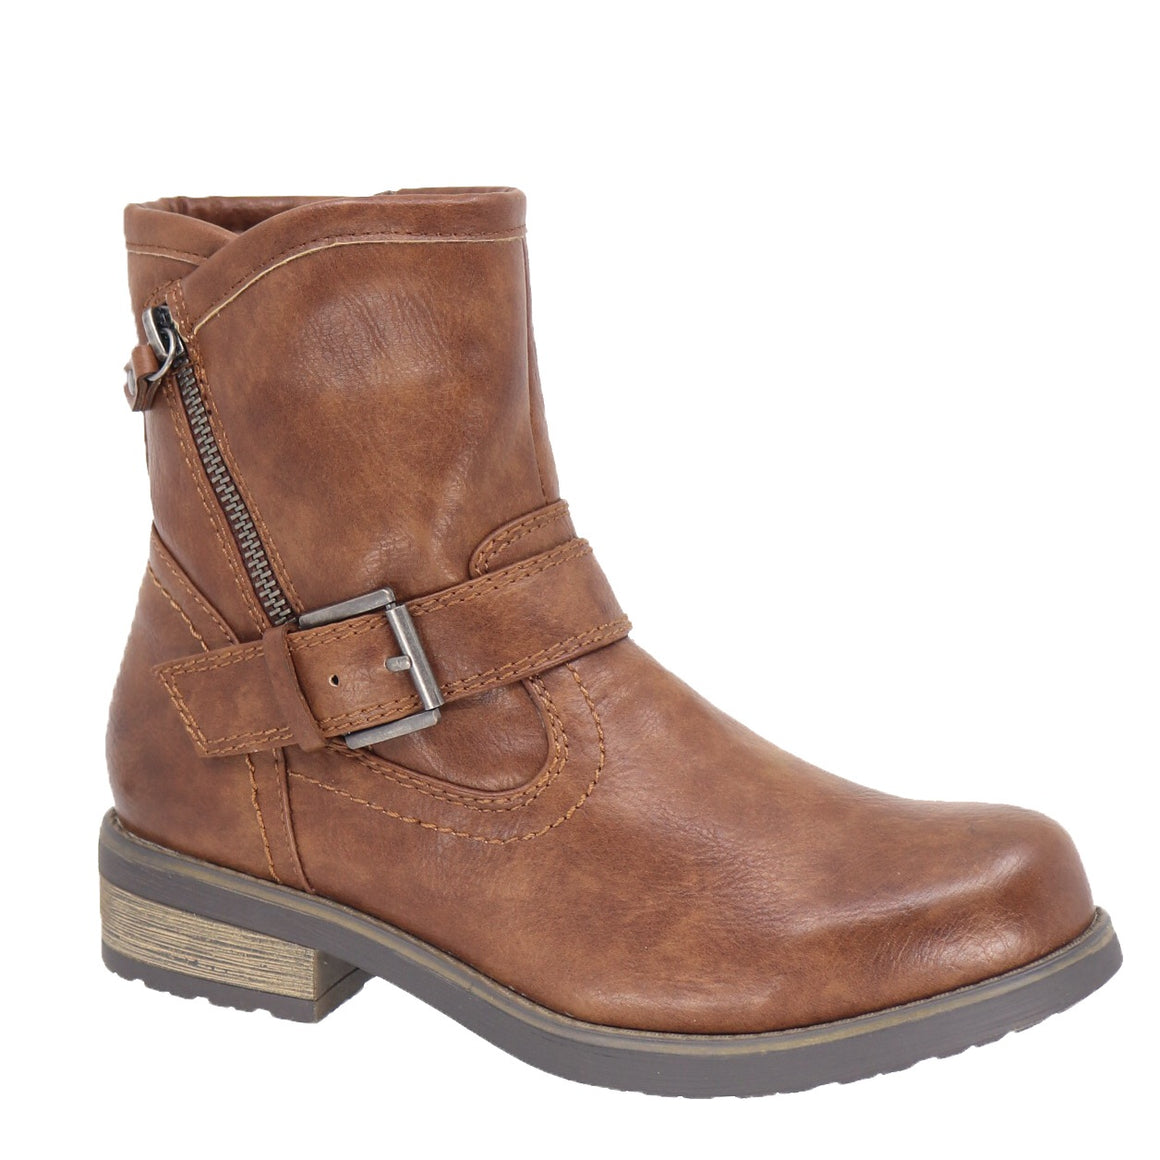 Jenna Short Tan Boots by Taxi